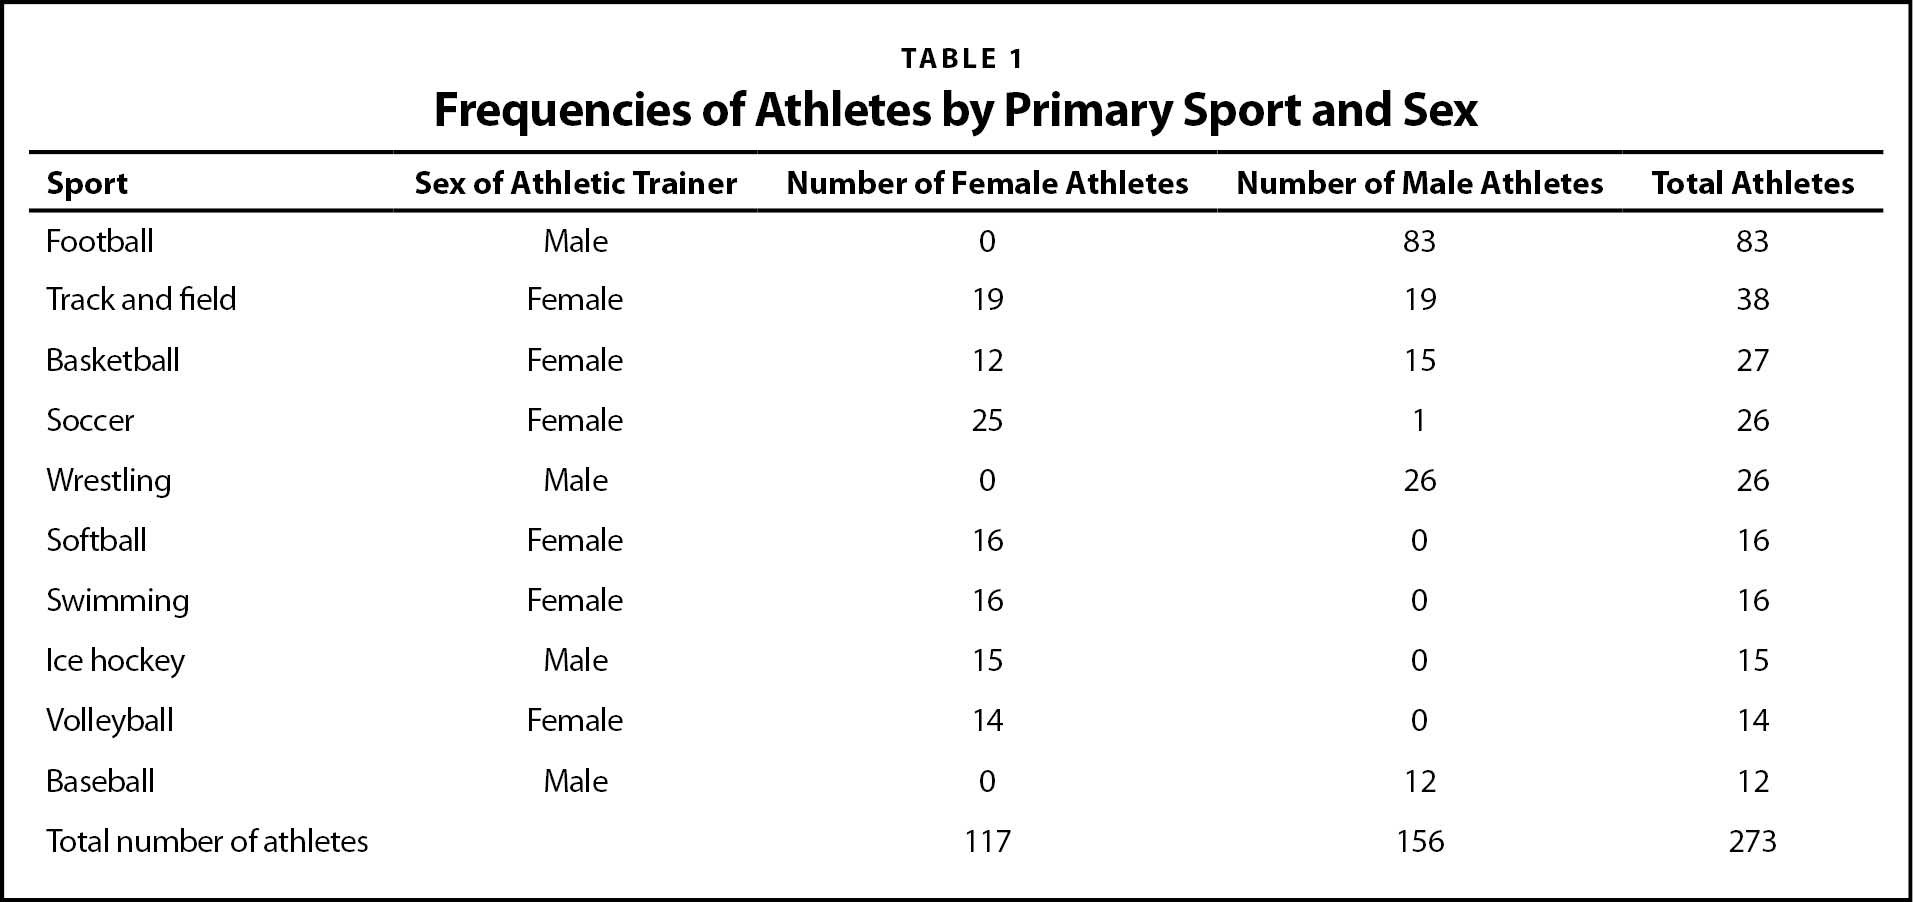 Frequencies of Athletes by Primary Sport and Sex